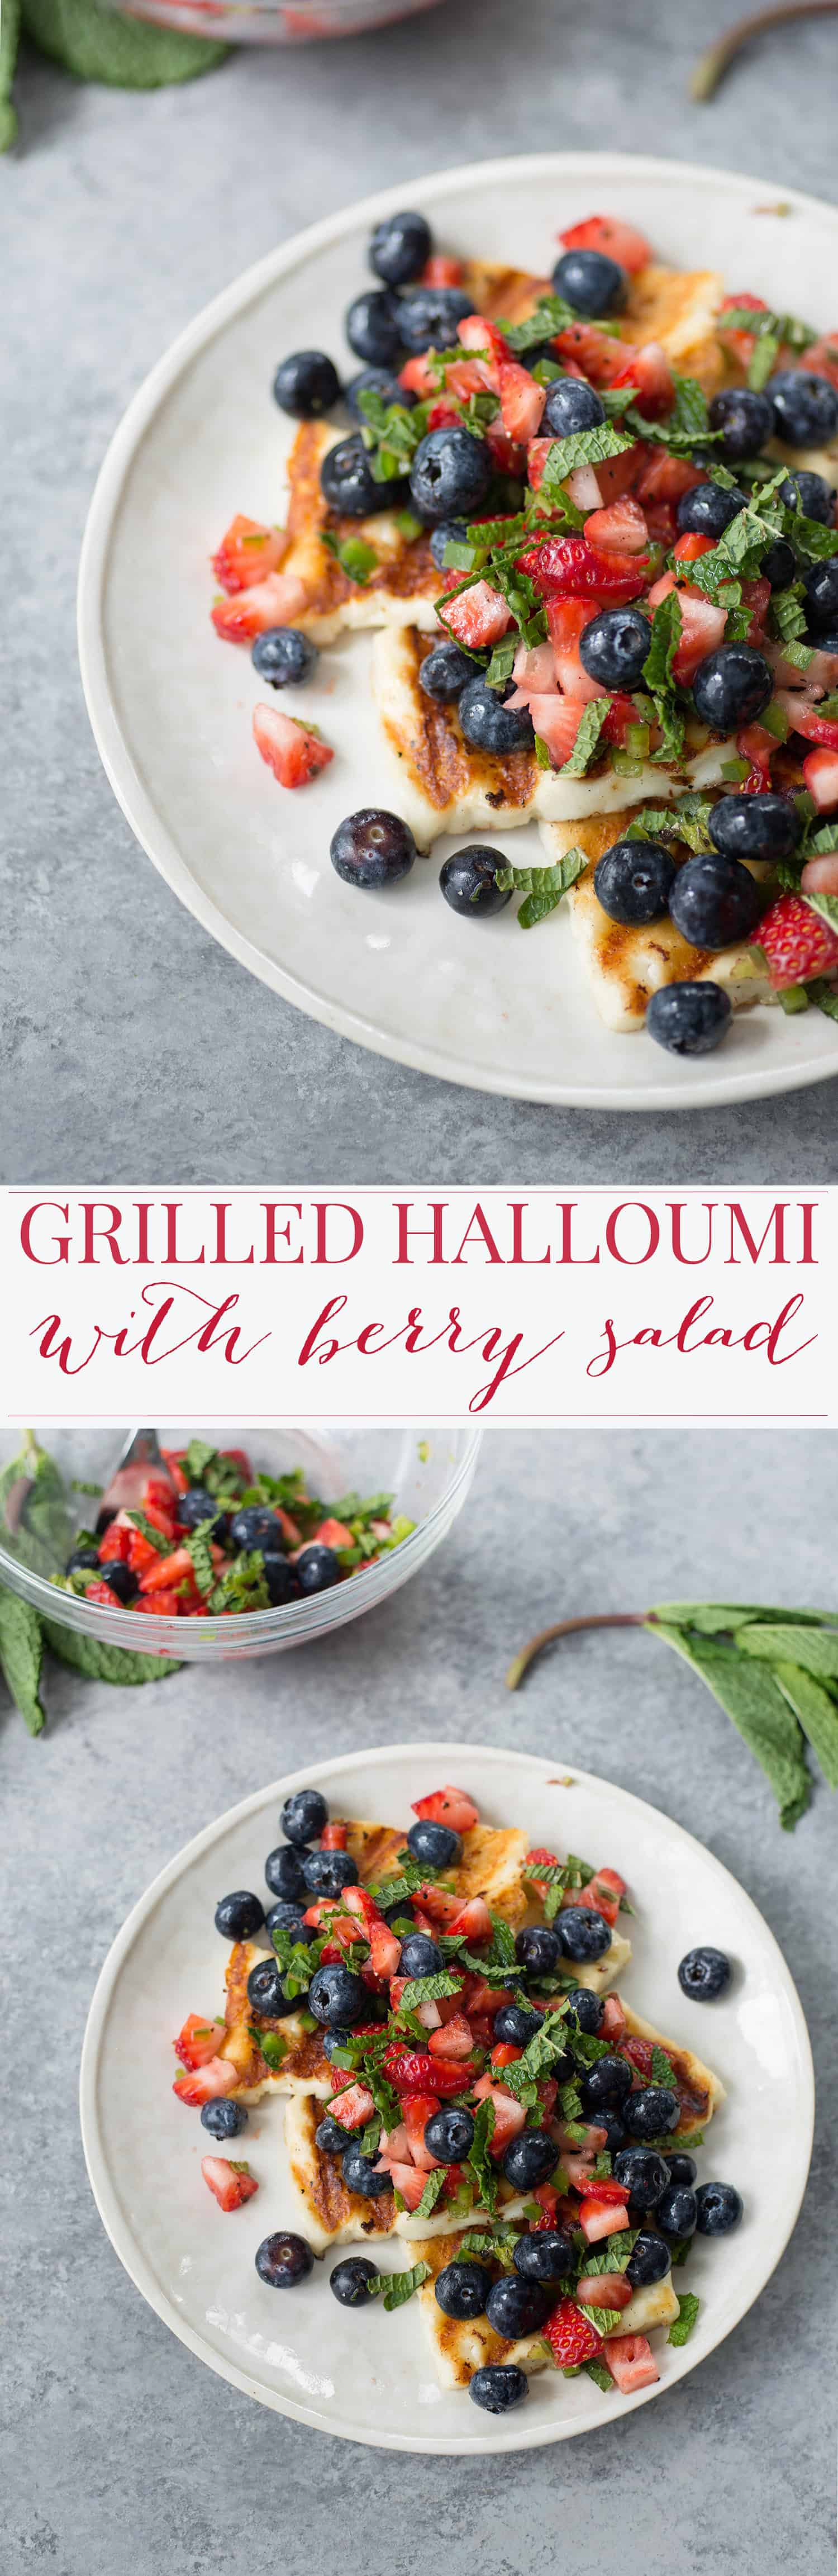 Grilled Halloumi Salad with Mixed Berry Salad. Grilled slices of halloumi cheese topped with a fresh mint and berry salad. Vegetarian & Gluten-Free | www.delishknowledge.com